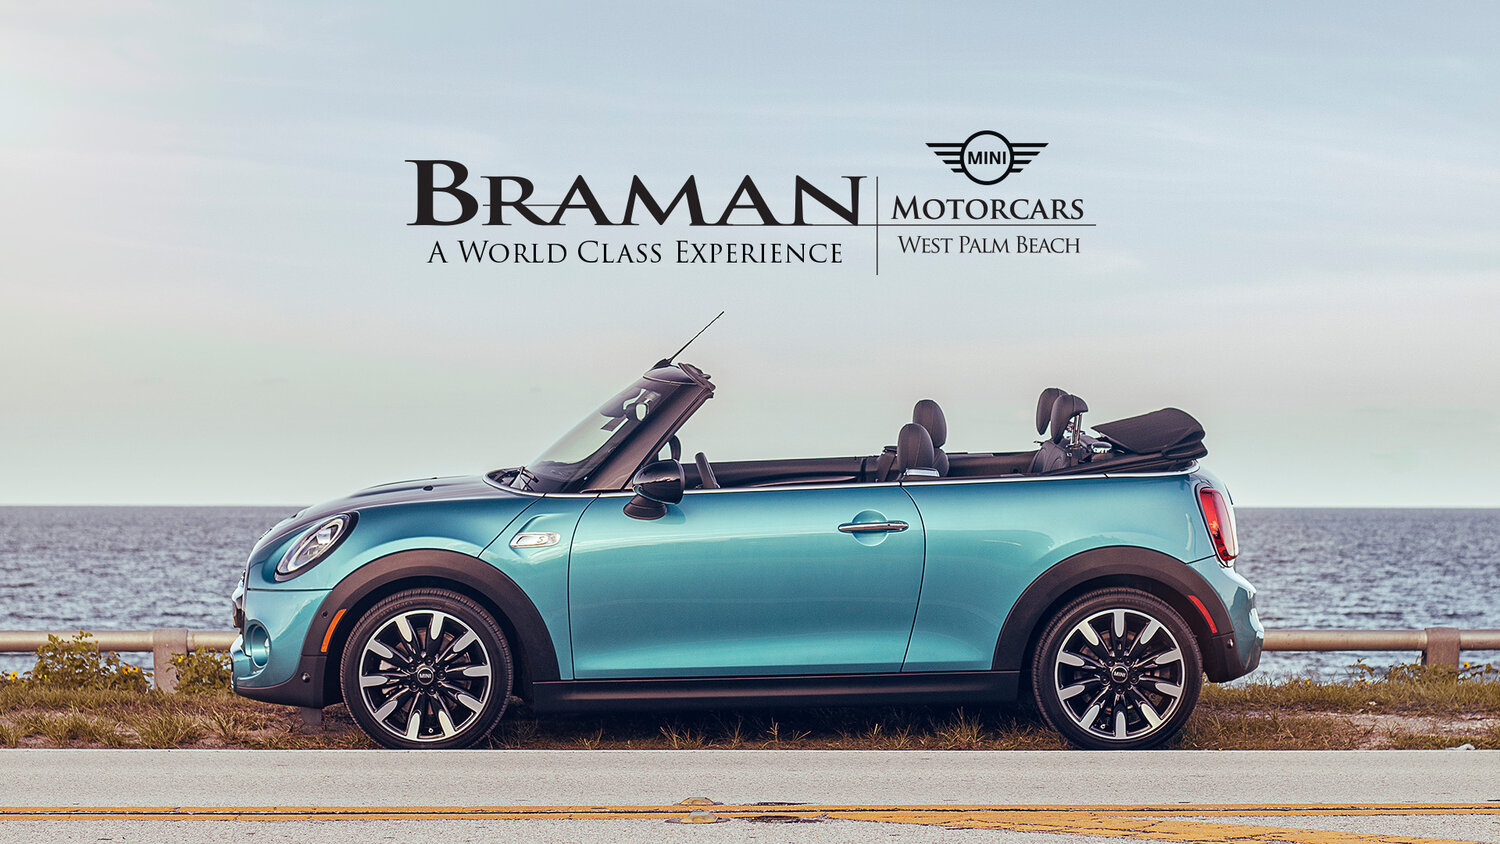 VIEW THE BRAMAN MINI CASE STUDY